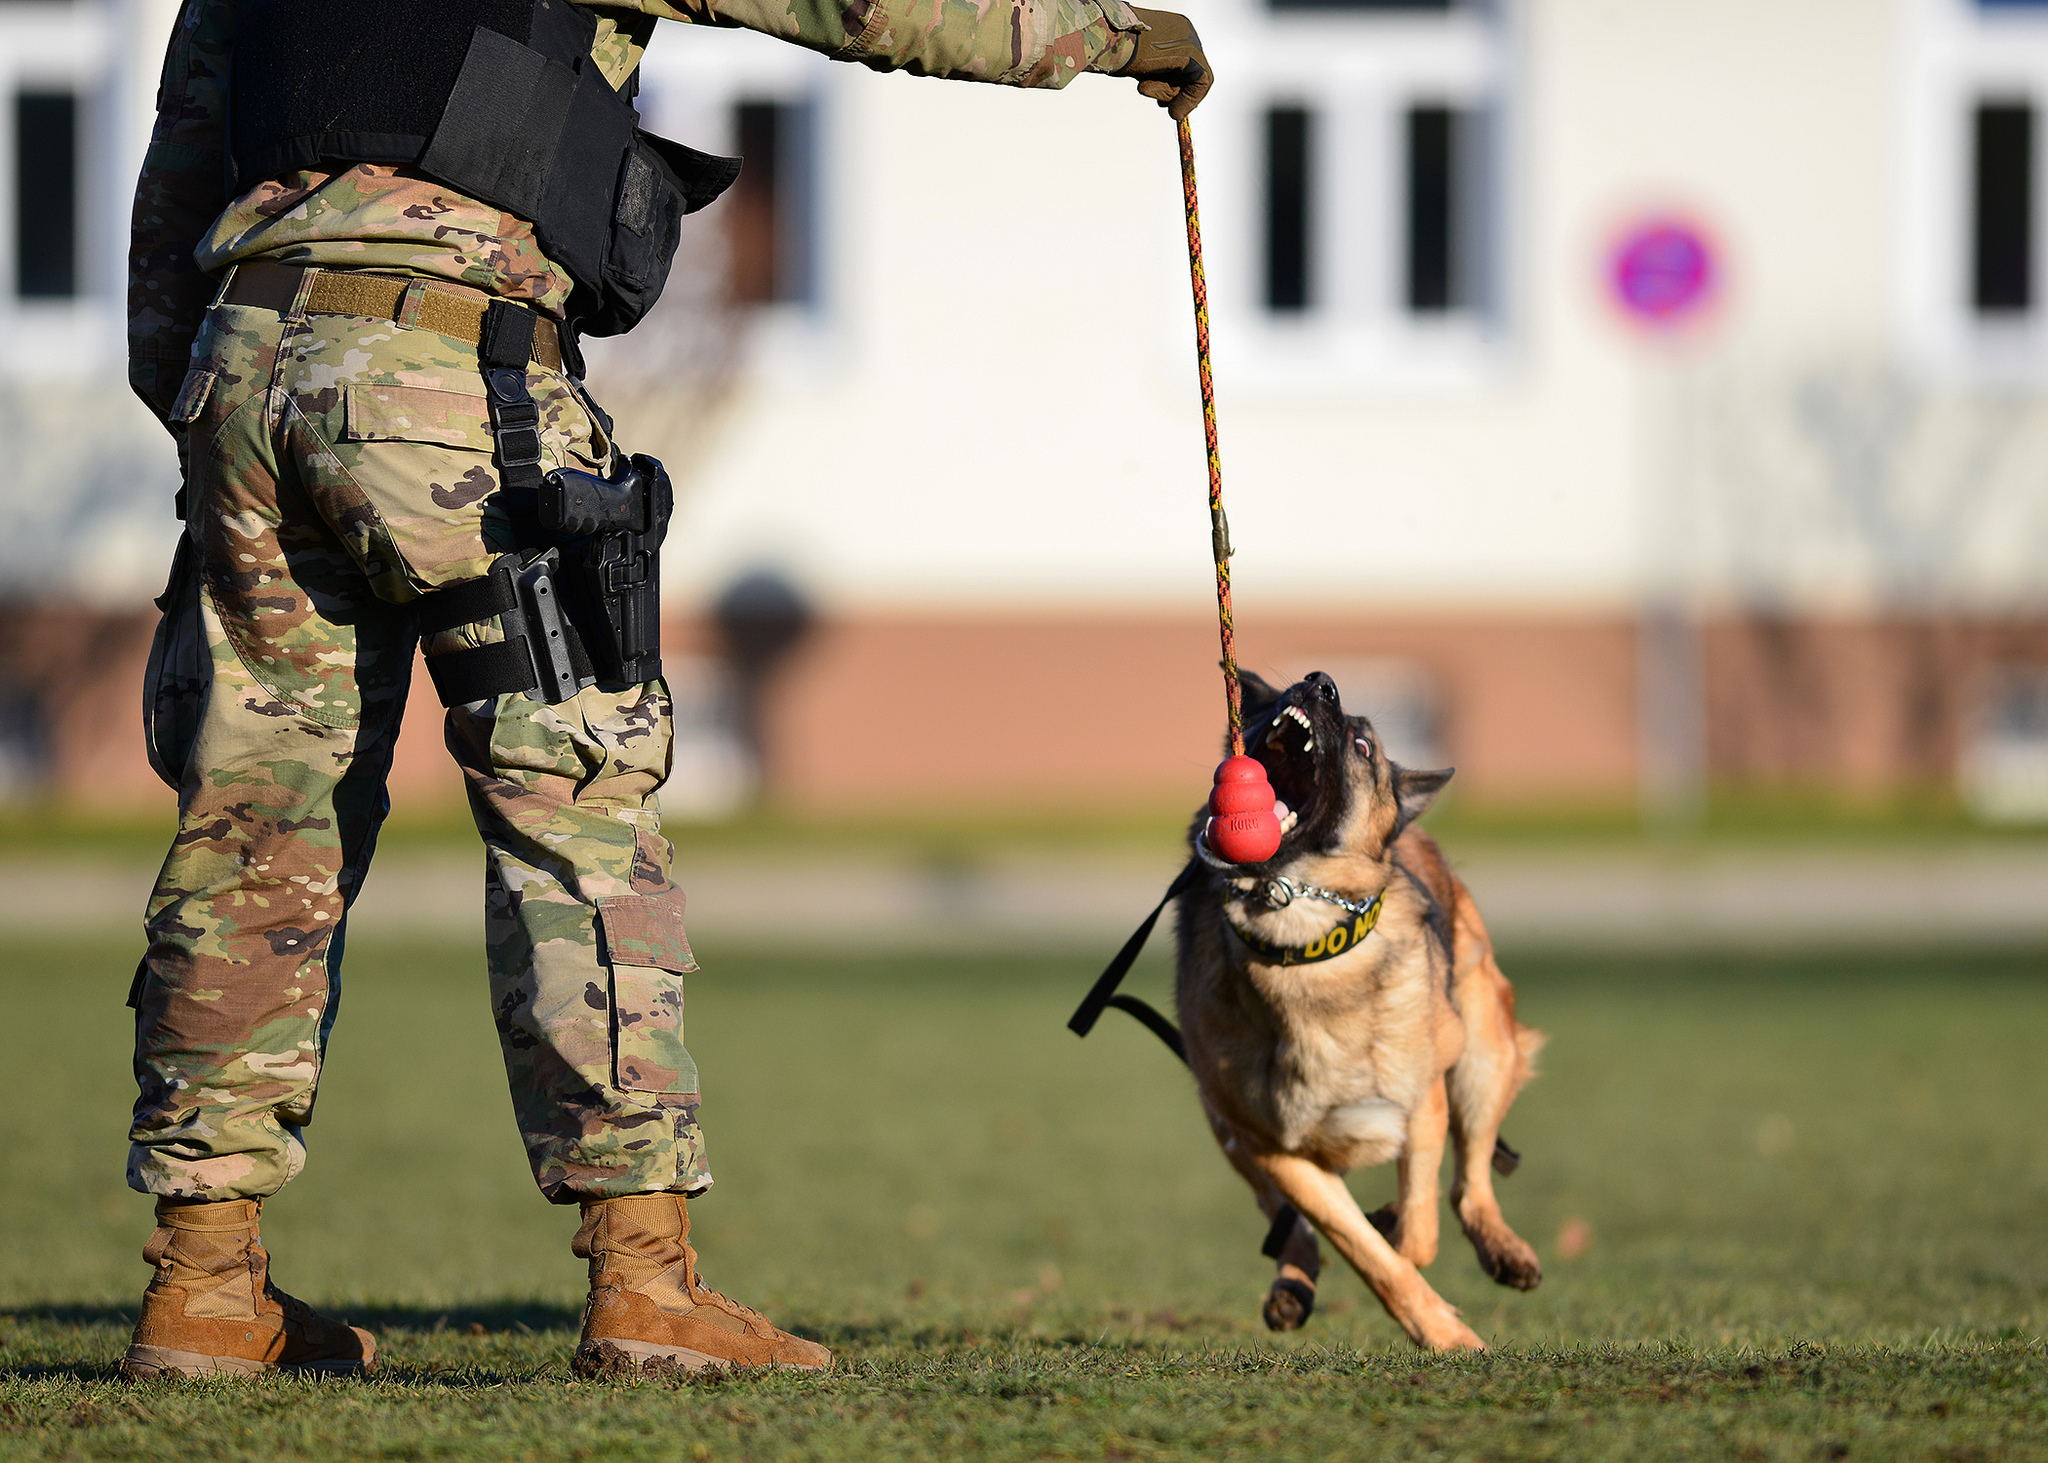 Pfc. Jermaine Lewis conducts basic obedience drills with Astor Y483, a military working dog, at Panzer Kaserne, Stuttgart, Germany, Feb. 4, 2019. (Visual Information Specialist Rey Ramon/Army)